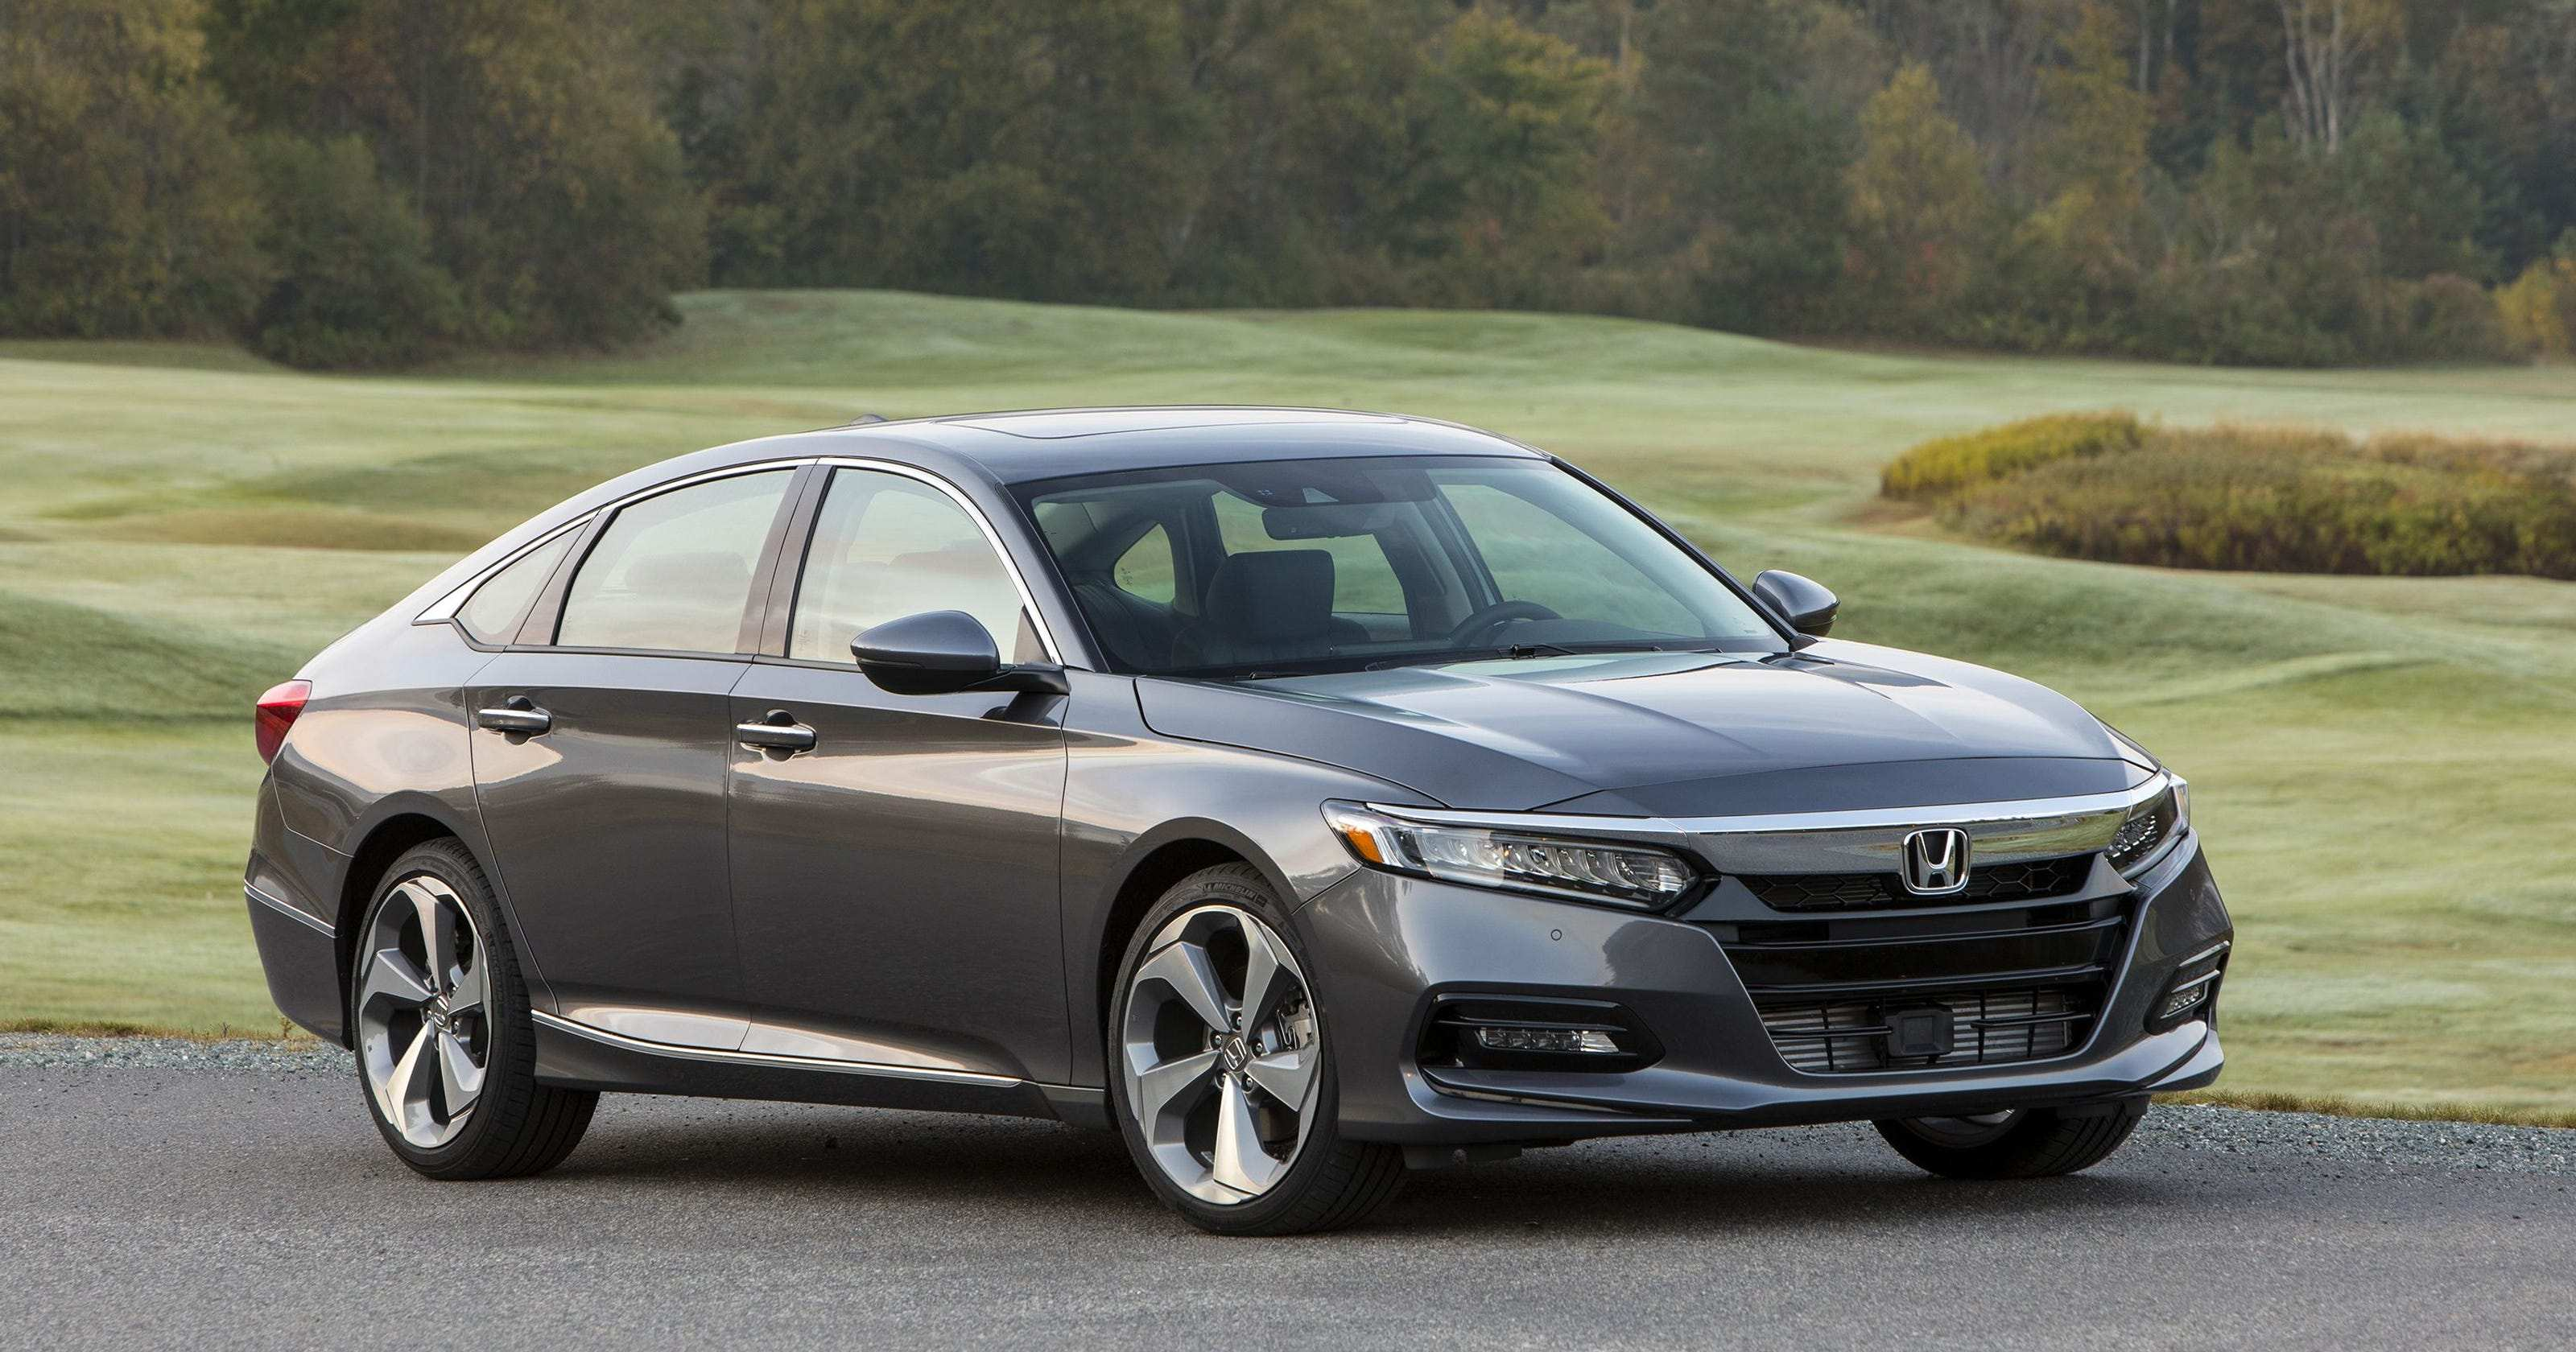 29 All New 2020 Honda Accord Coupe Sedan Configurations